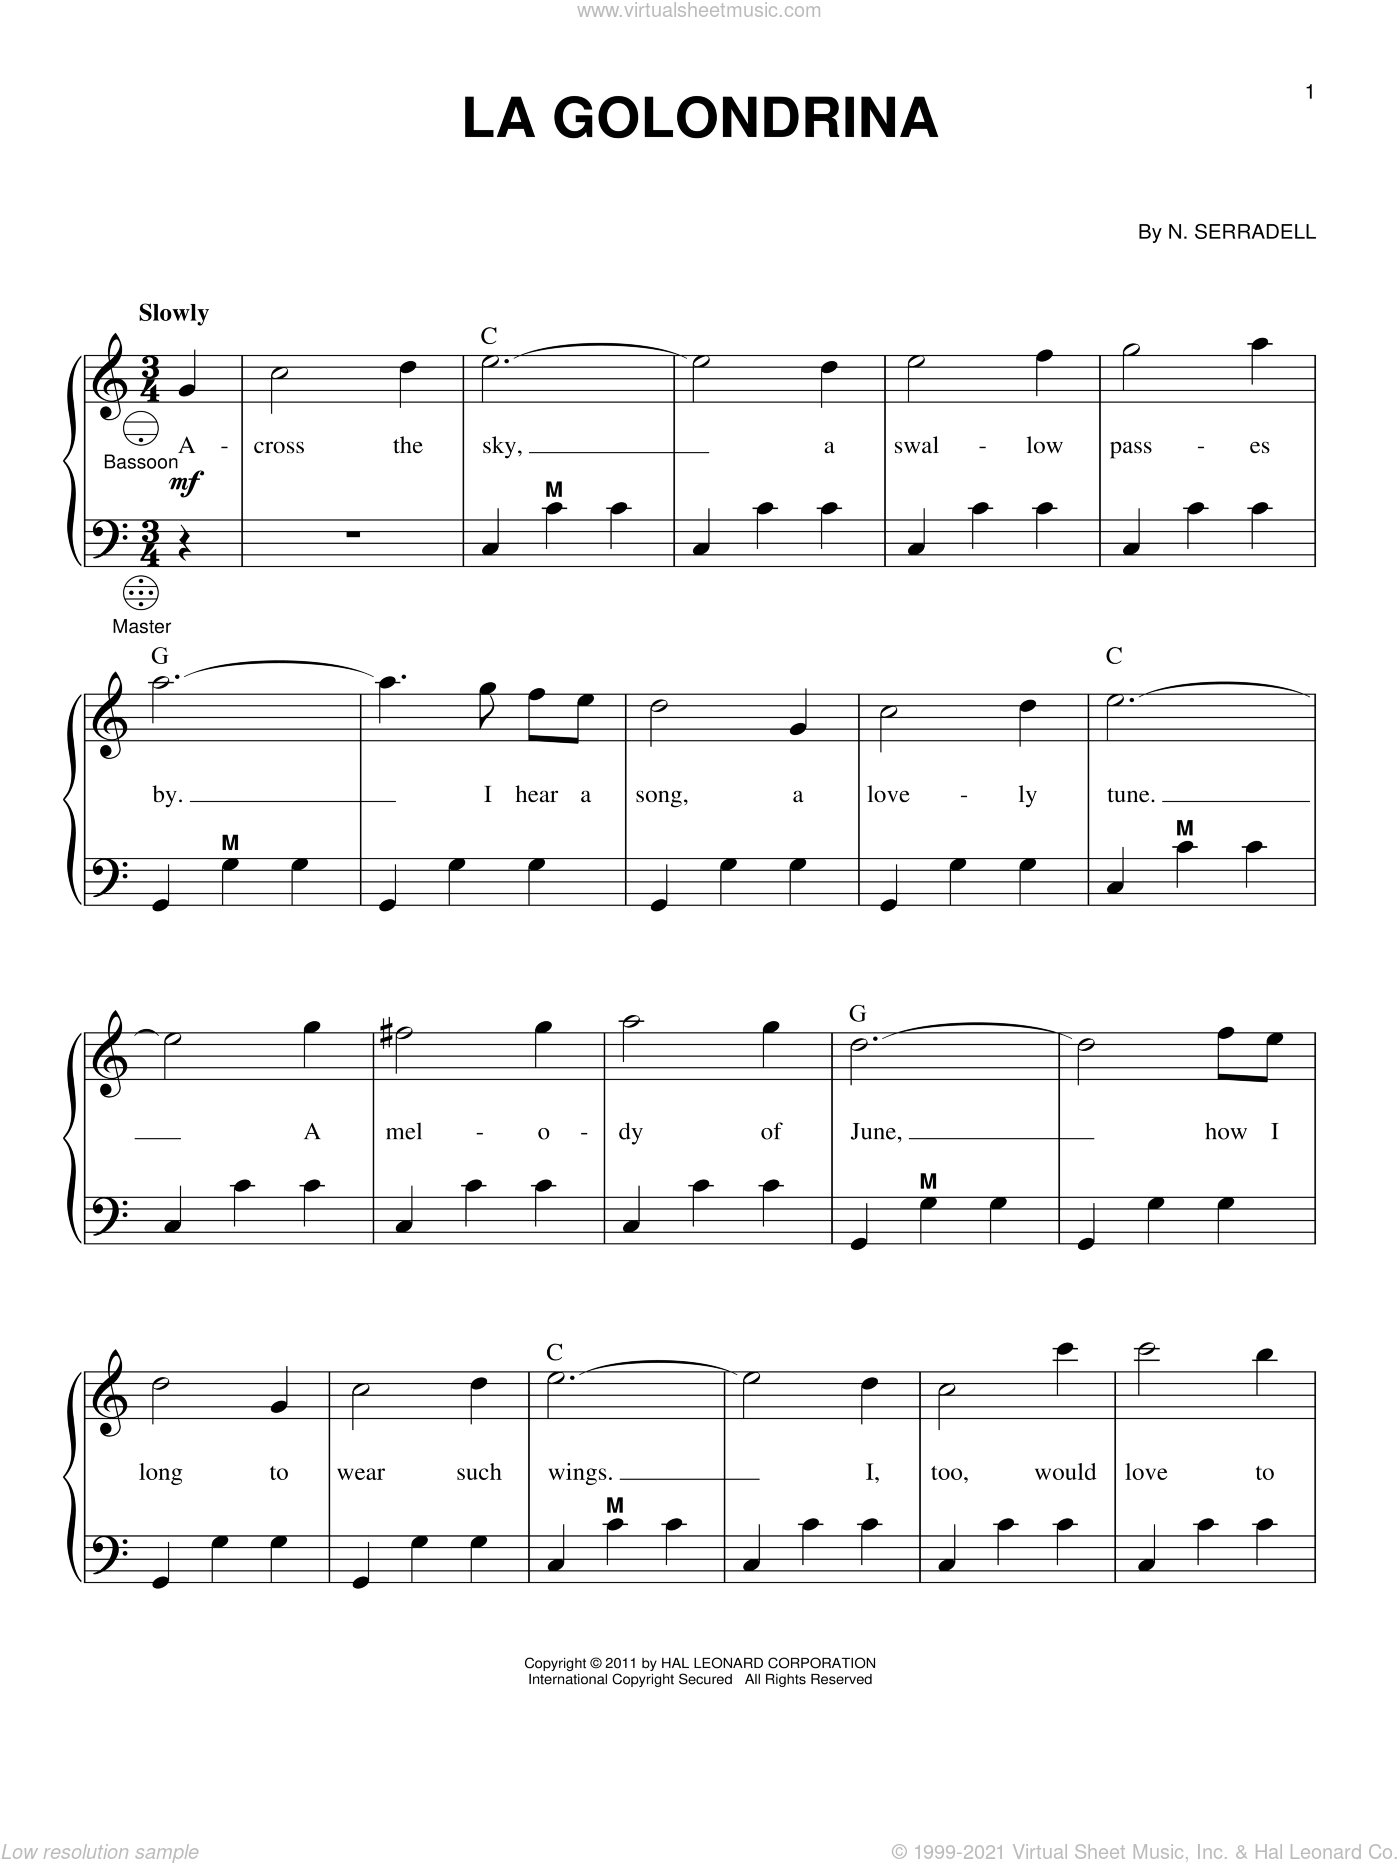 La Golondrina sheet music for accordion by N. Serradell and Gary Meisner, intermediate skill level